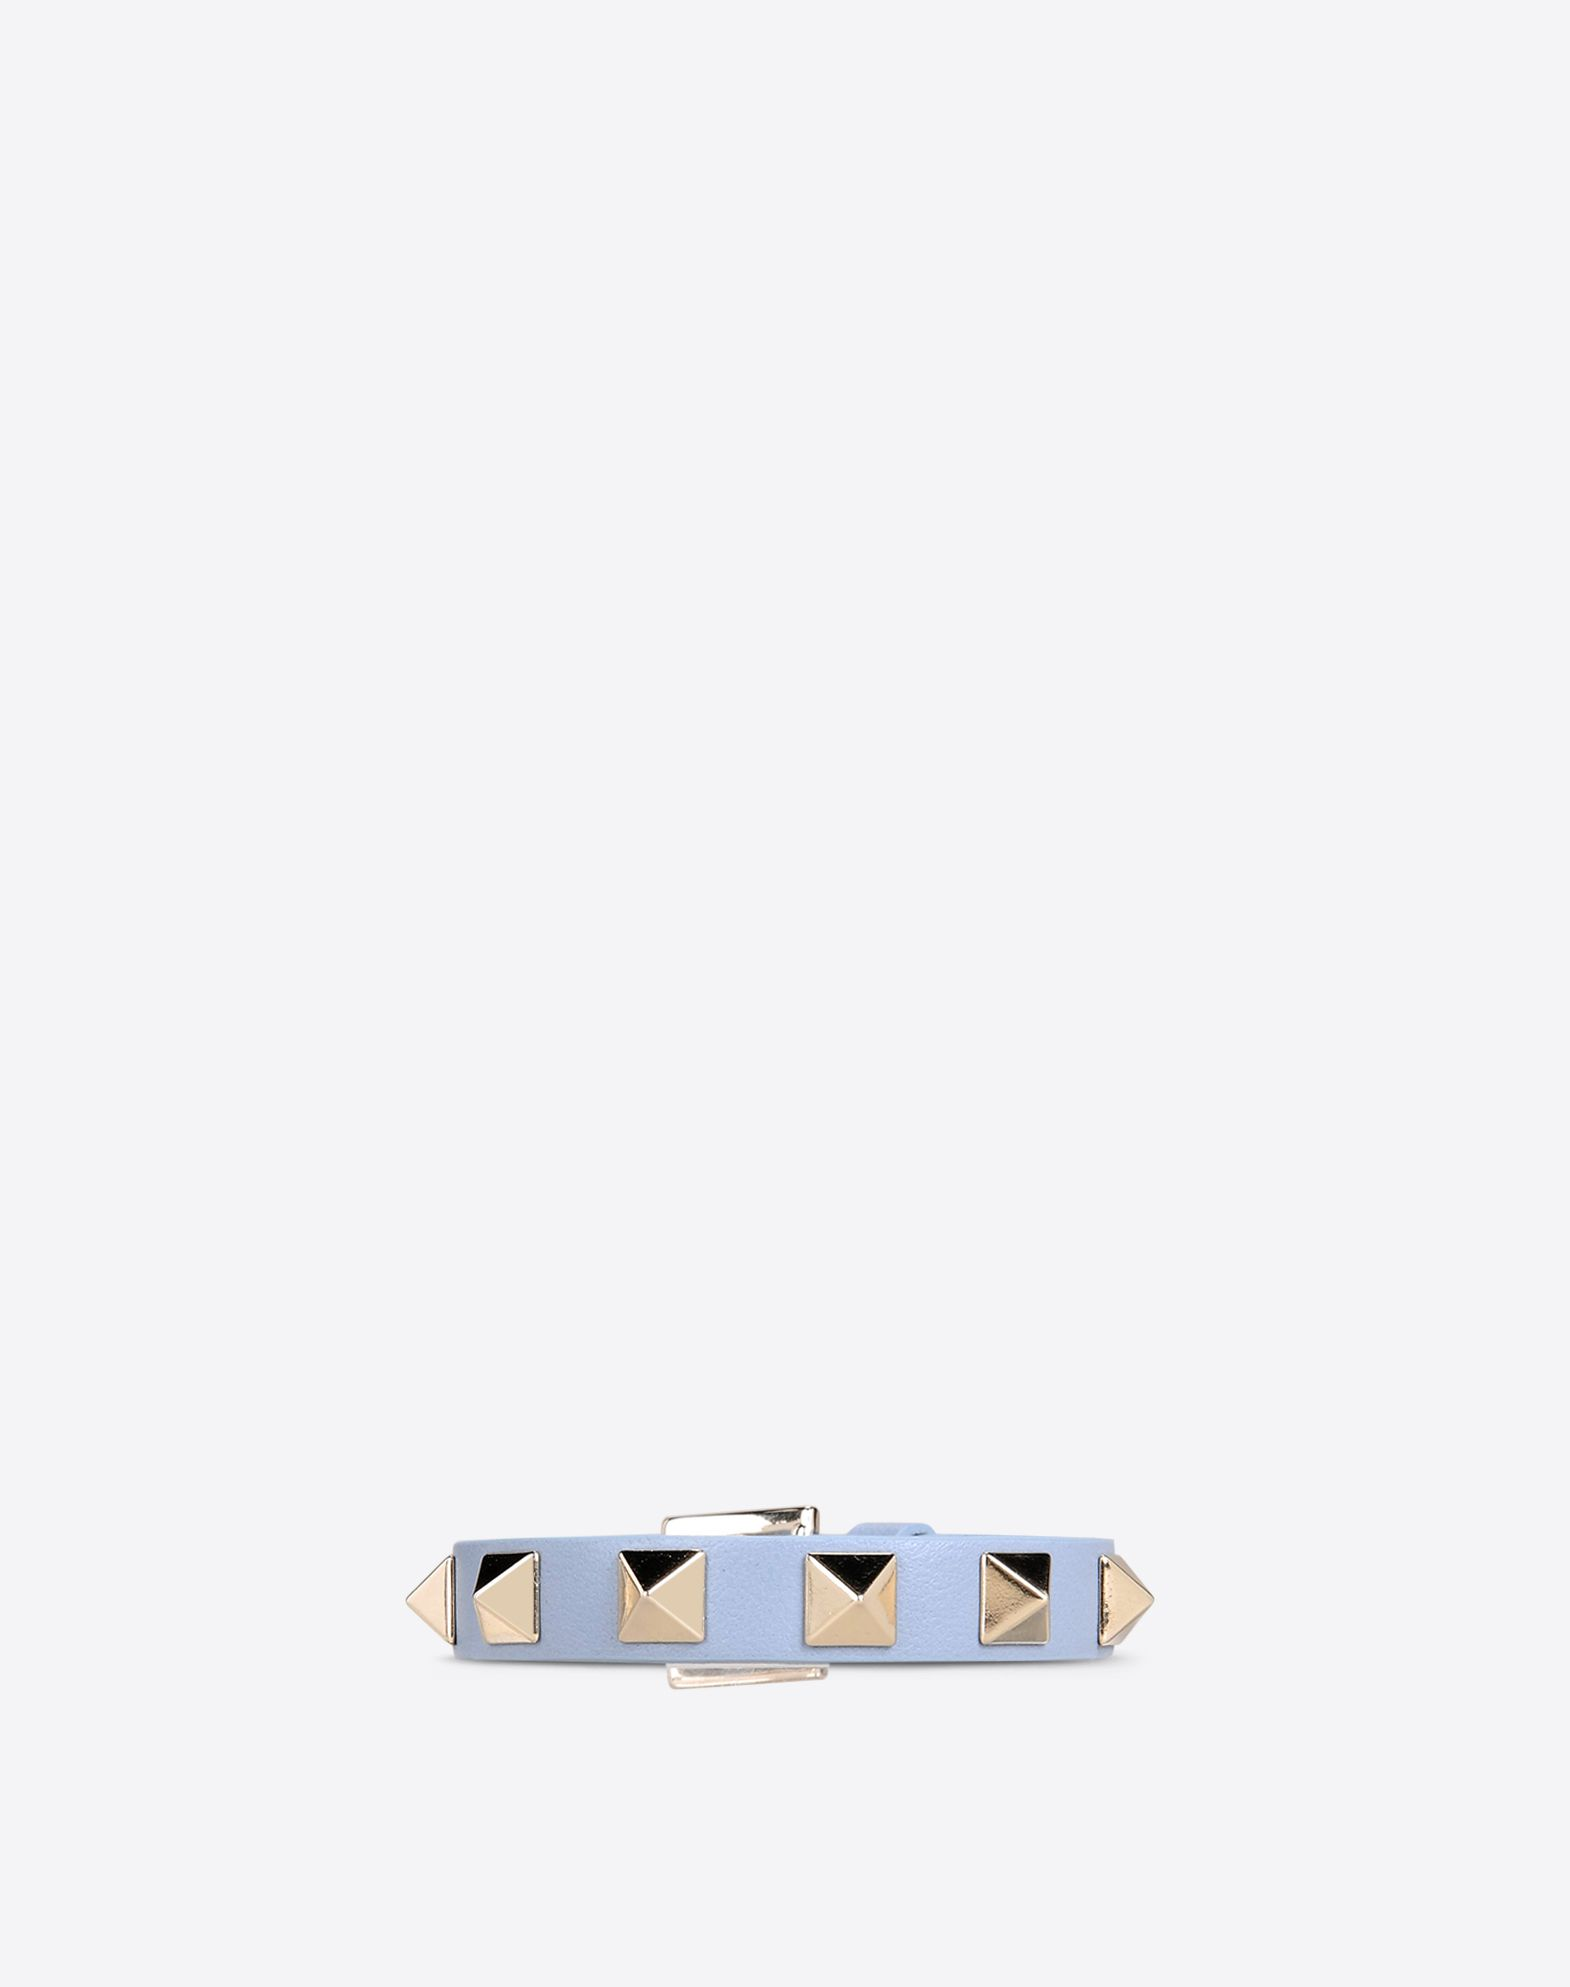 VALENTINO Logo detail Metal Applications Solid color Buckle  46414798ds